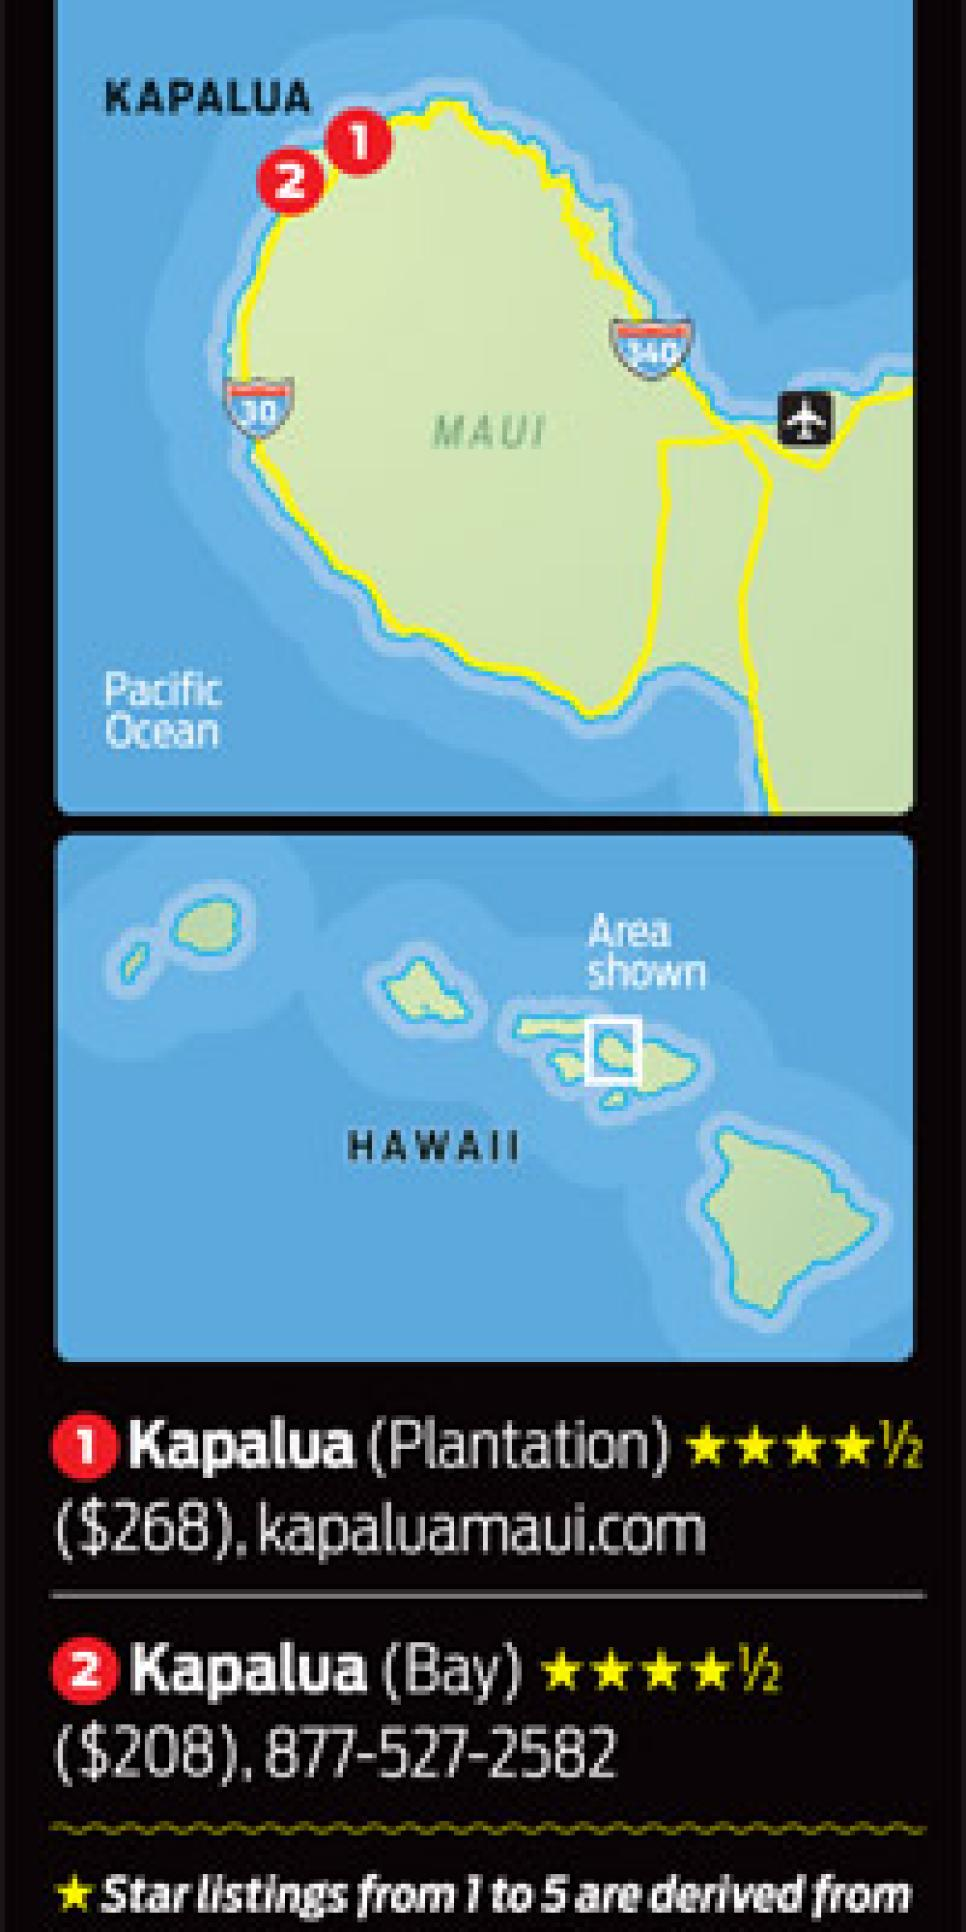 courses-2012-09-coar02_away_game_kapalua.jpg